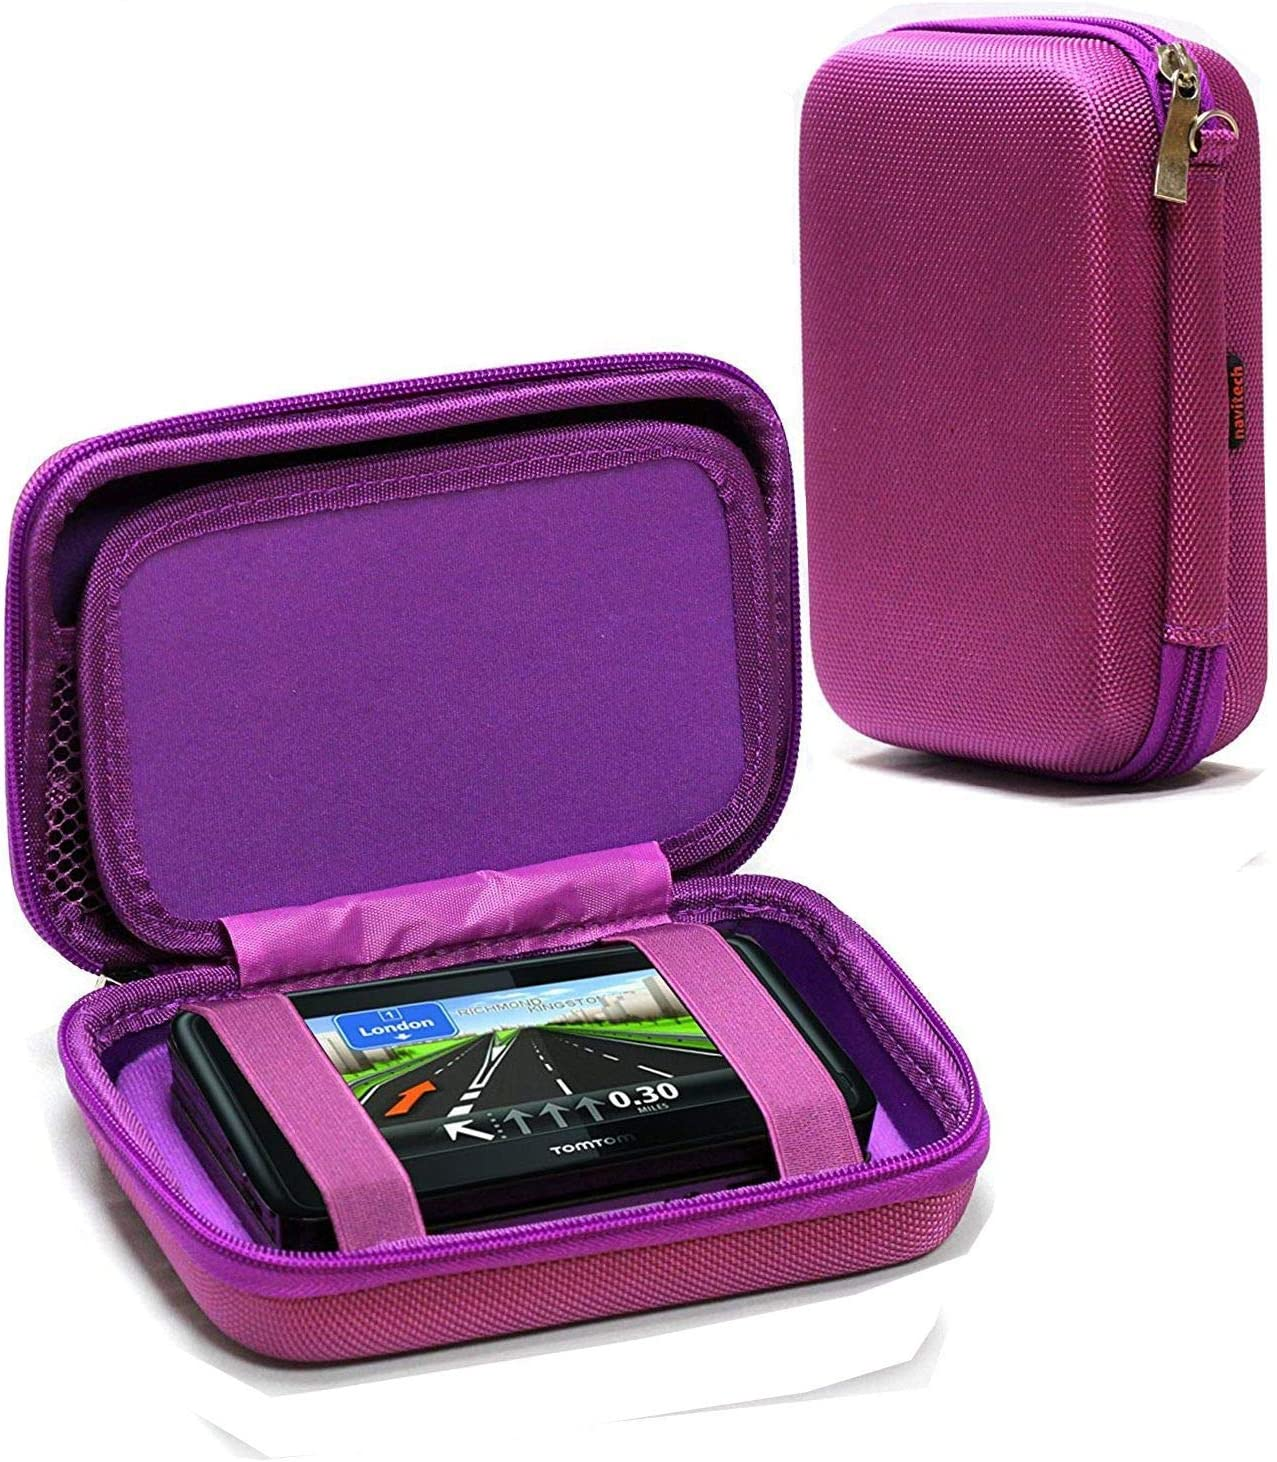 Navitech Purple Hard Carry Case Compatible Via Special price for a limited time Tomtom The wholesale with 5